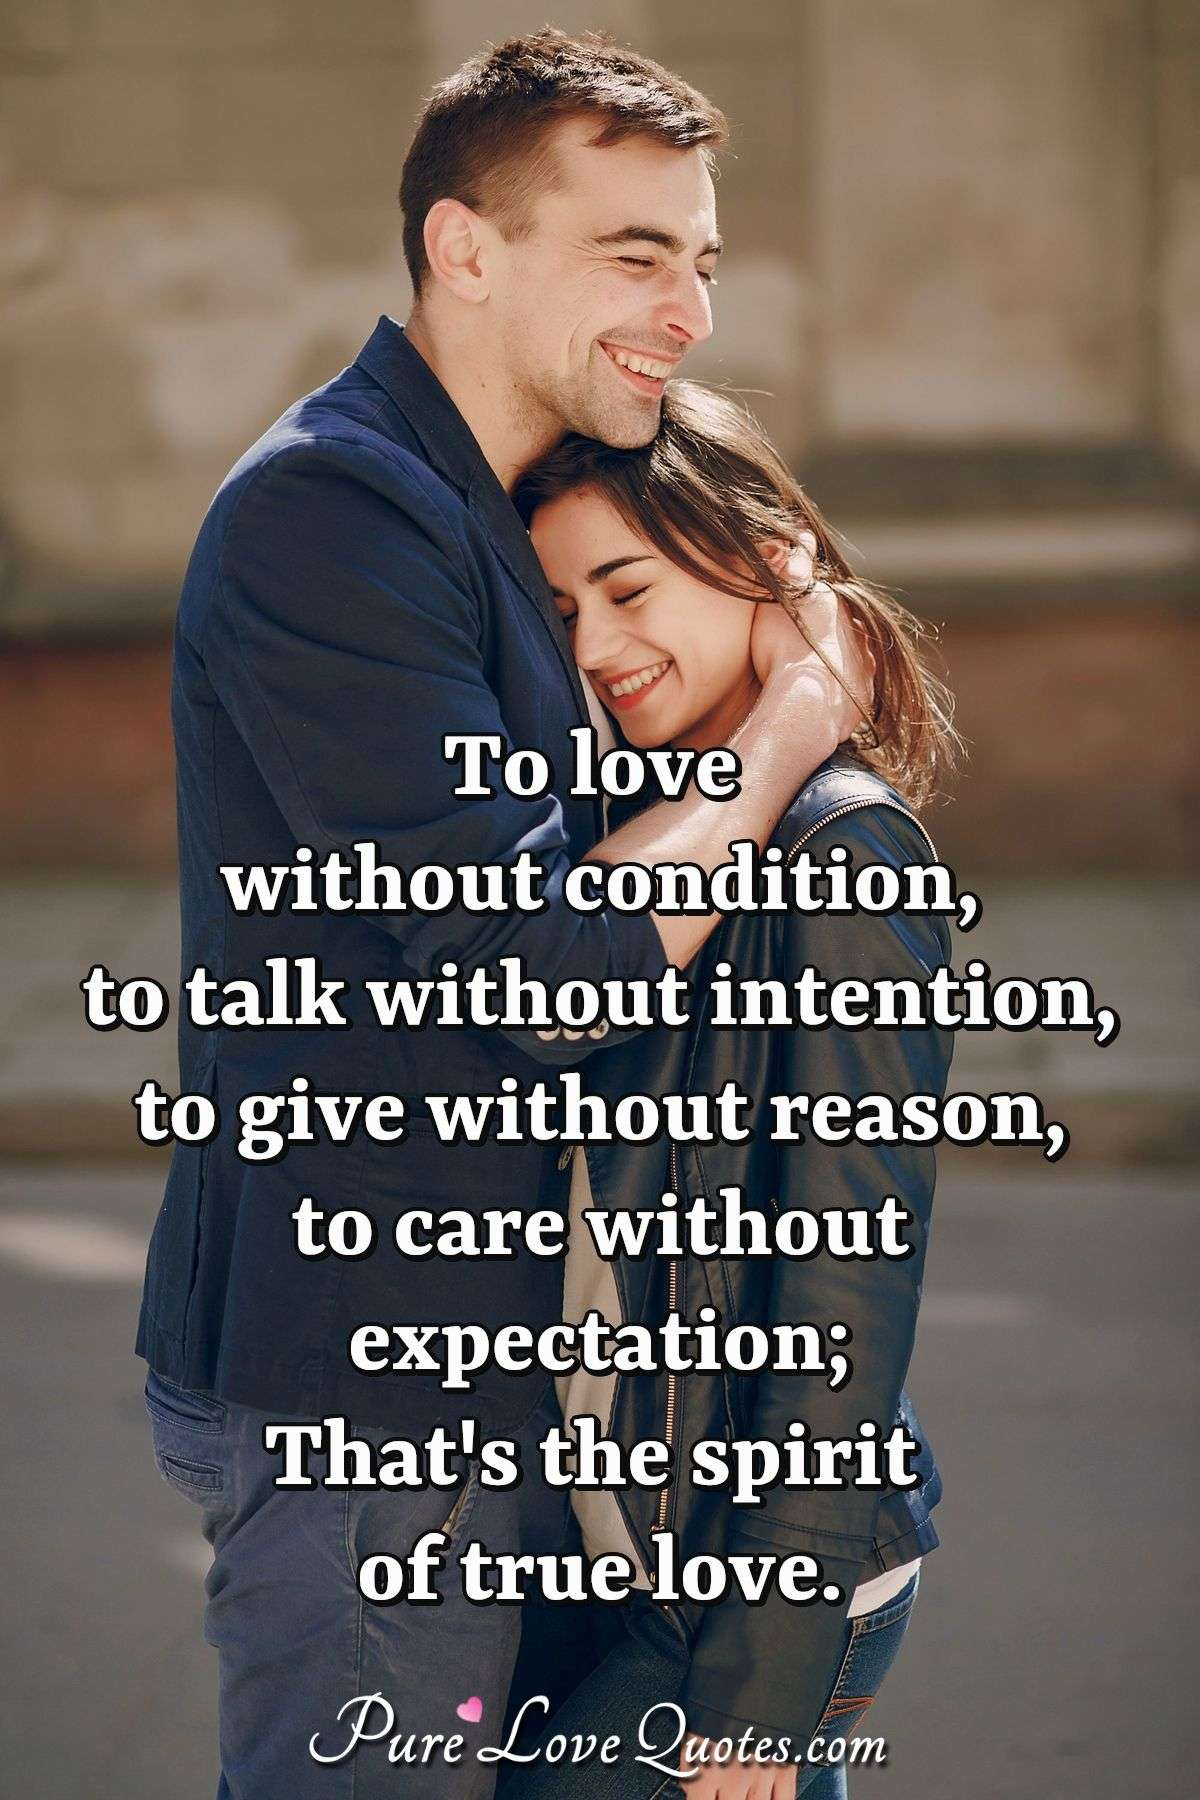 To love without condition, to talk without intention, to give without reason, to care without expectation; That's the spirit of true love. - Anonymous